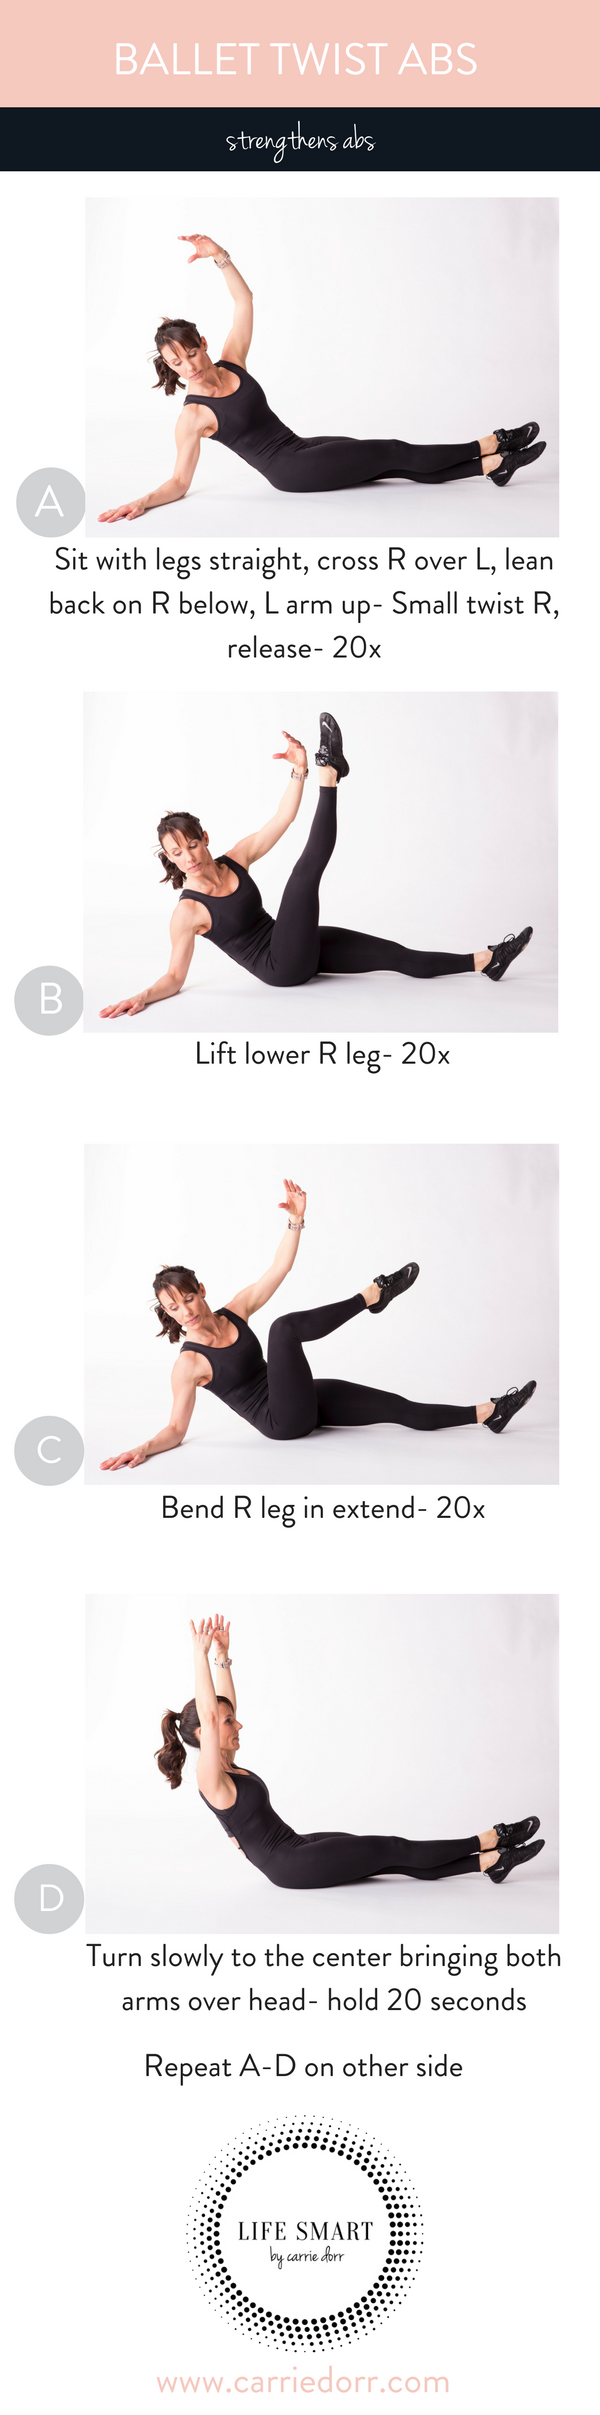 Ballet Twist Abs-LIFE SMART by Carrie Dorr